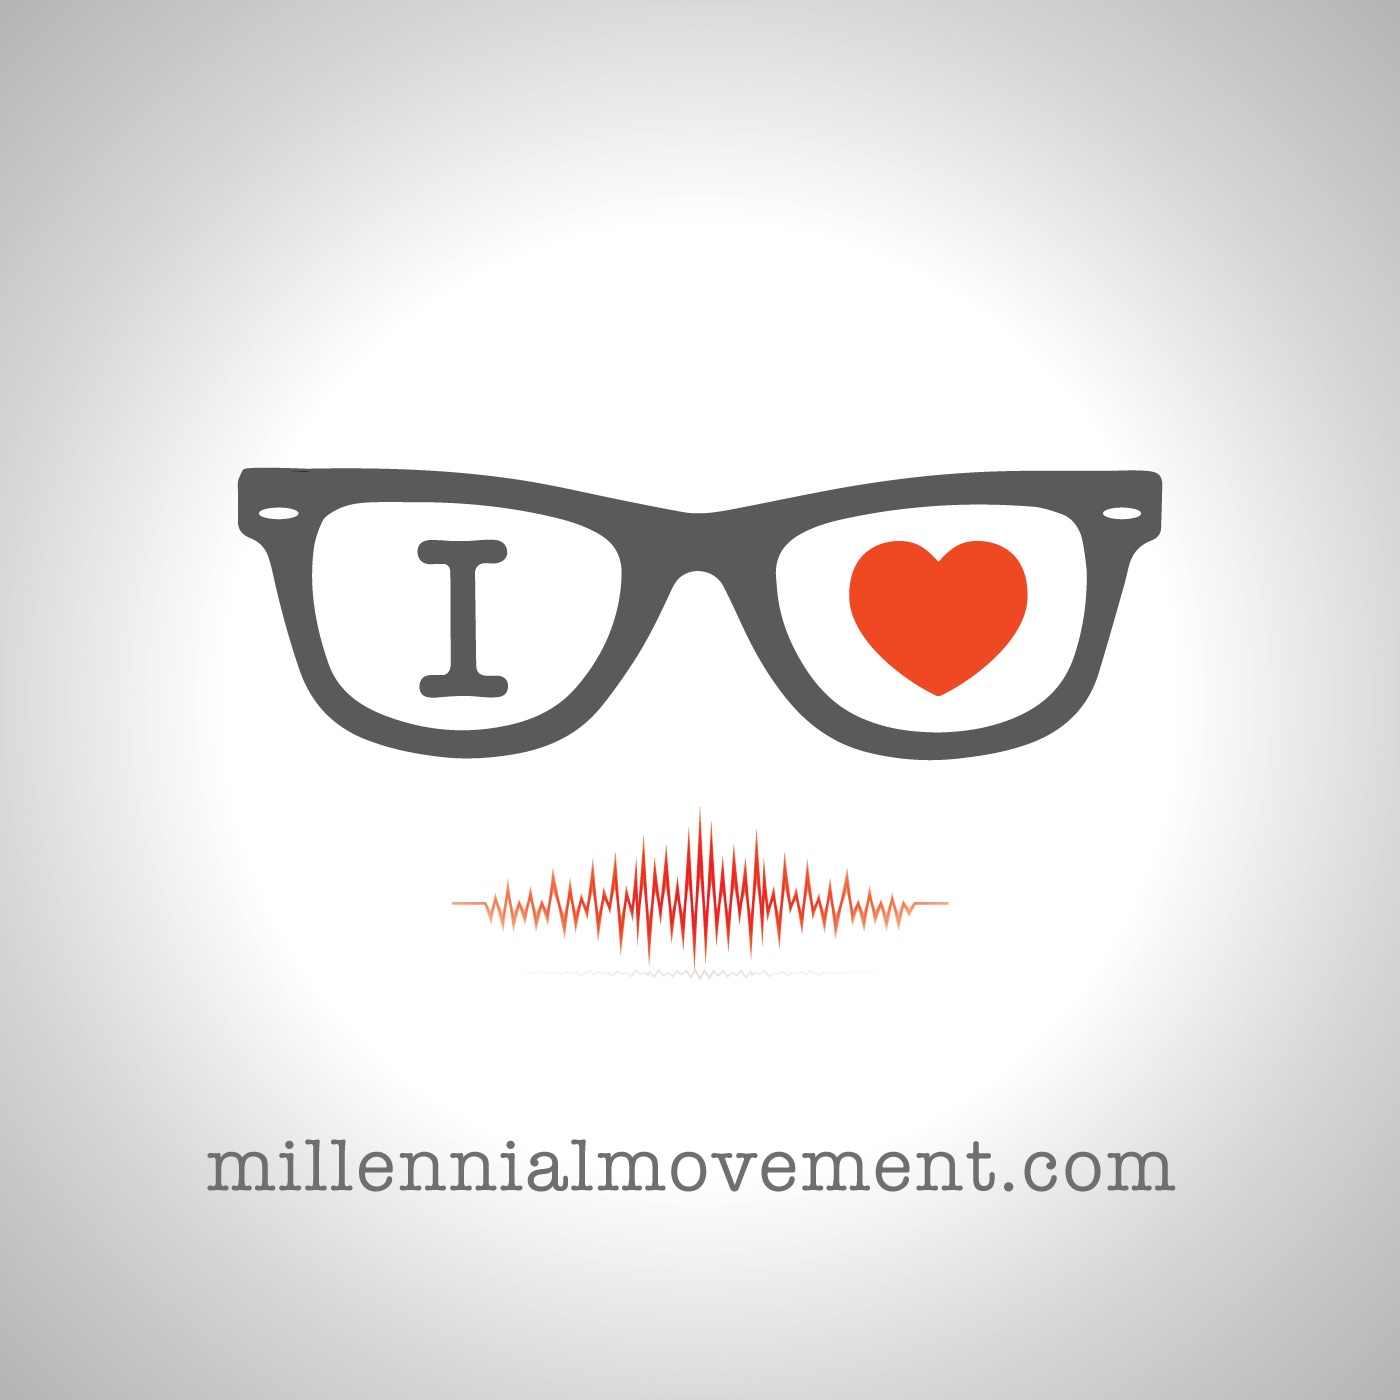 Millennial Movement